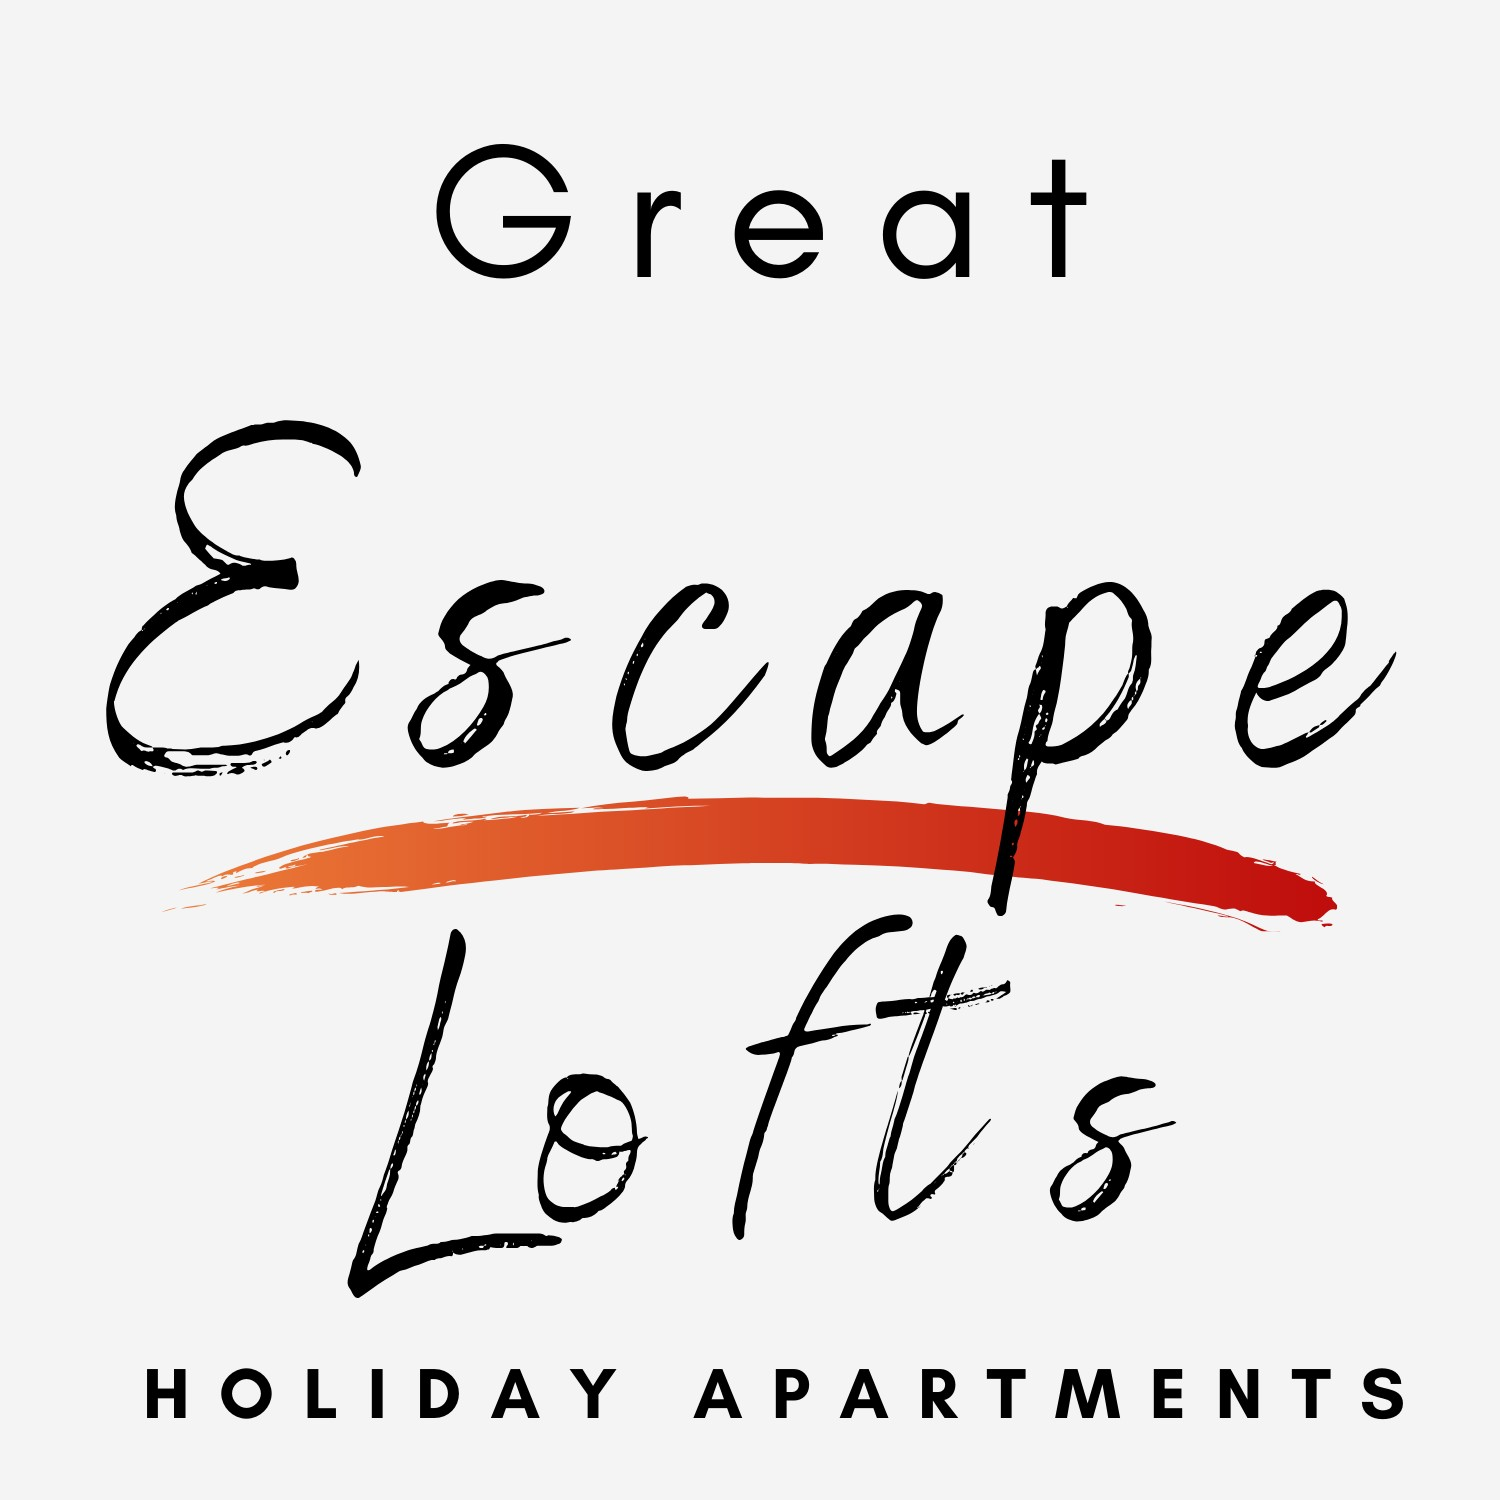 Great Escape Lofts